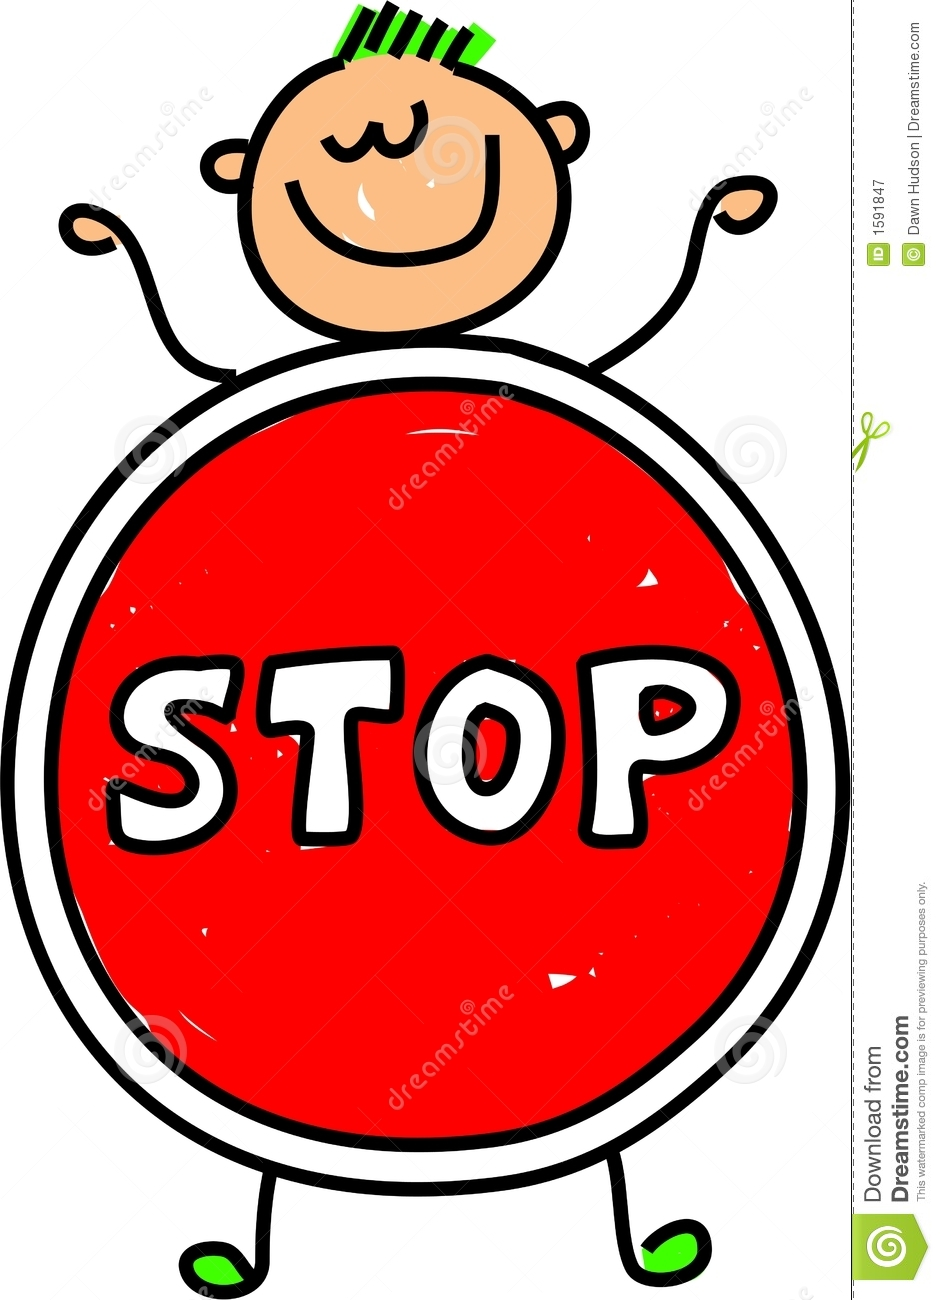 Stop Kid Royalty Free Stock Photography Image 1591847